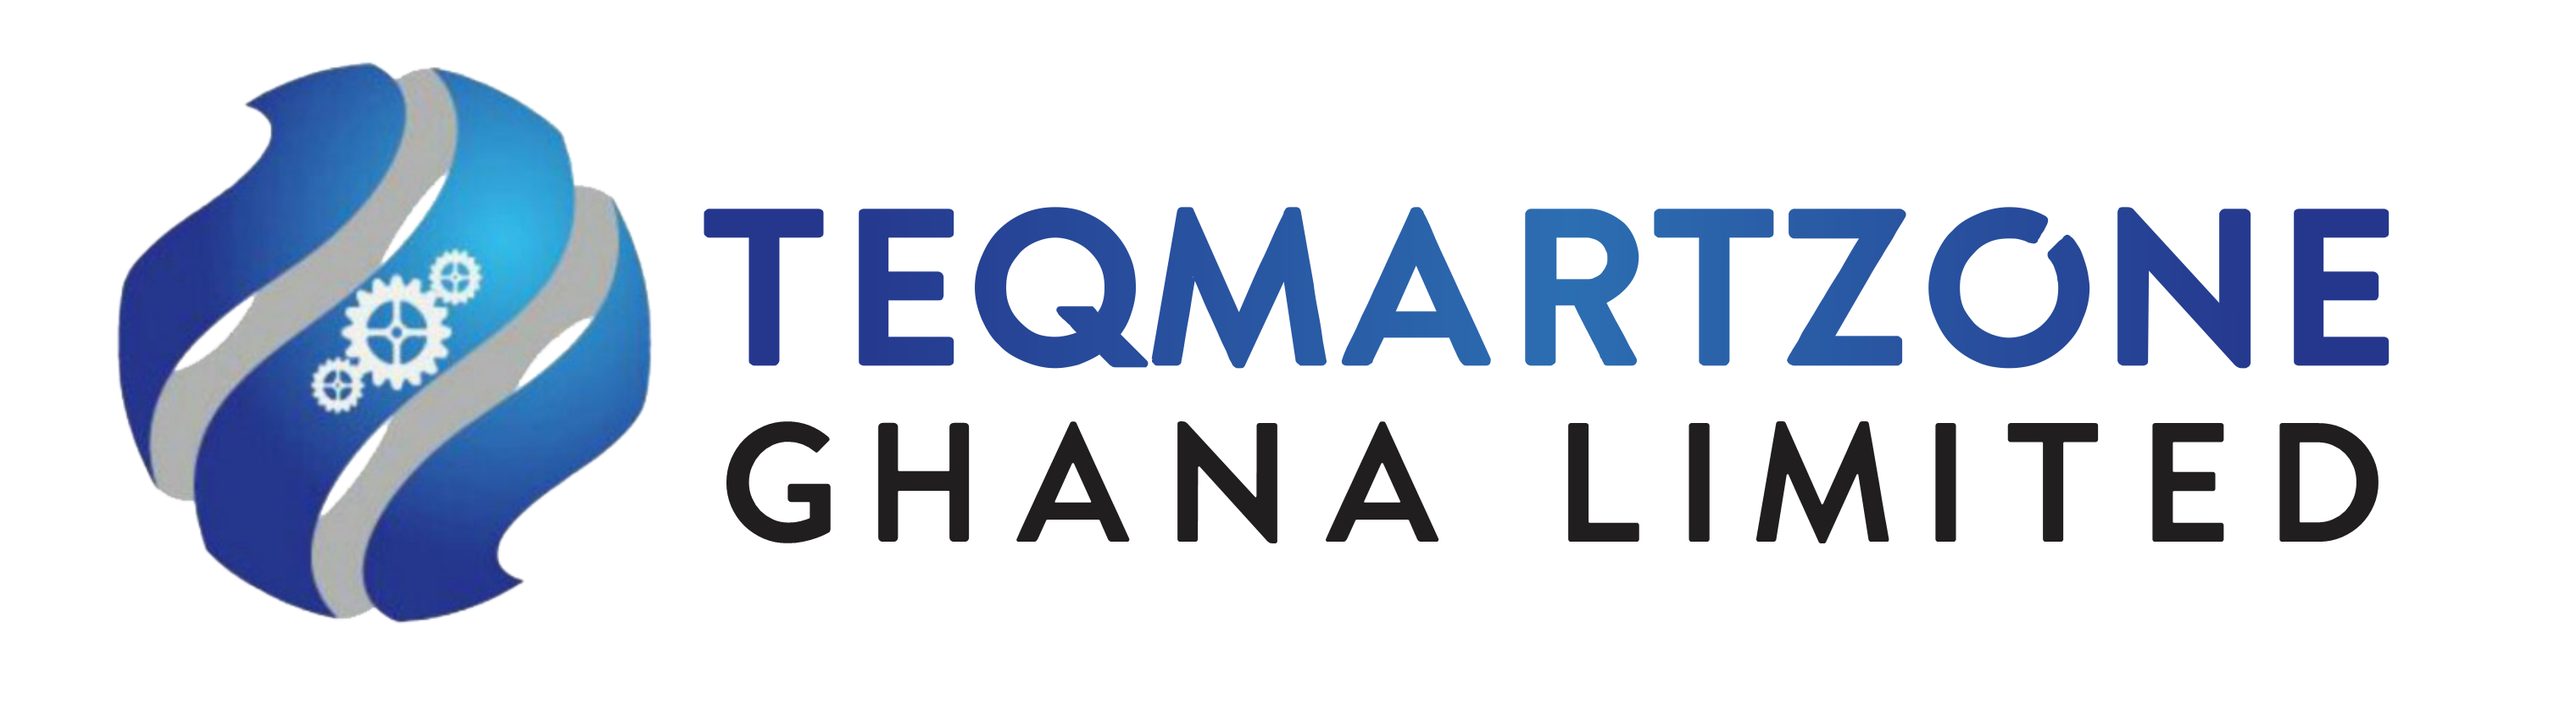 Teqmartzone Ghana Limited-Buy Laptops | Computer | Accessories in Ghana